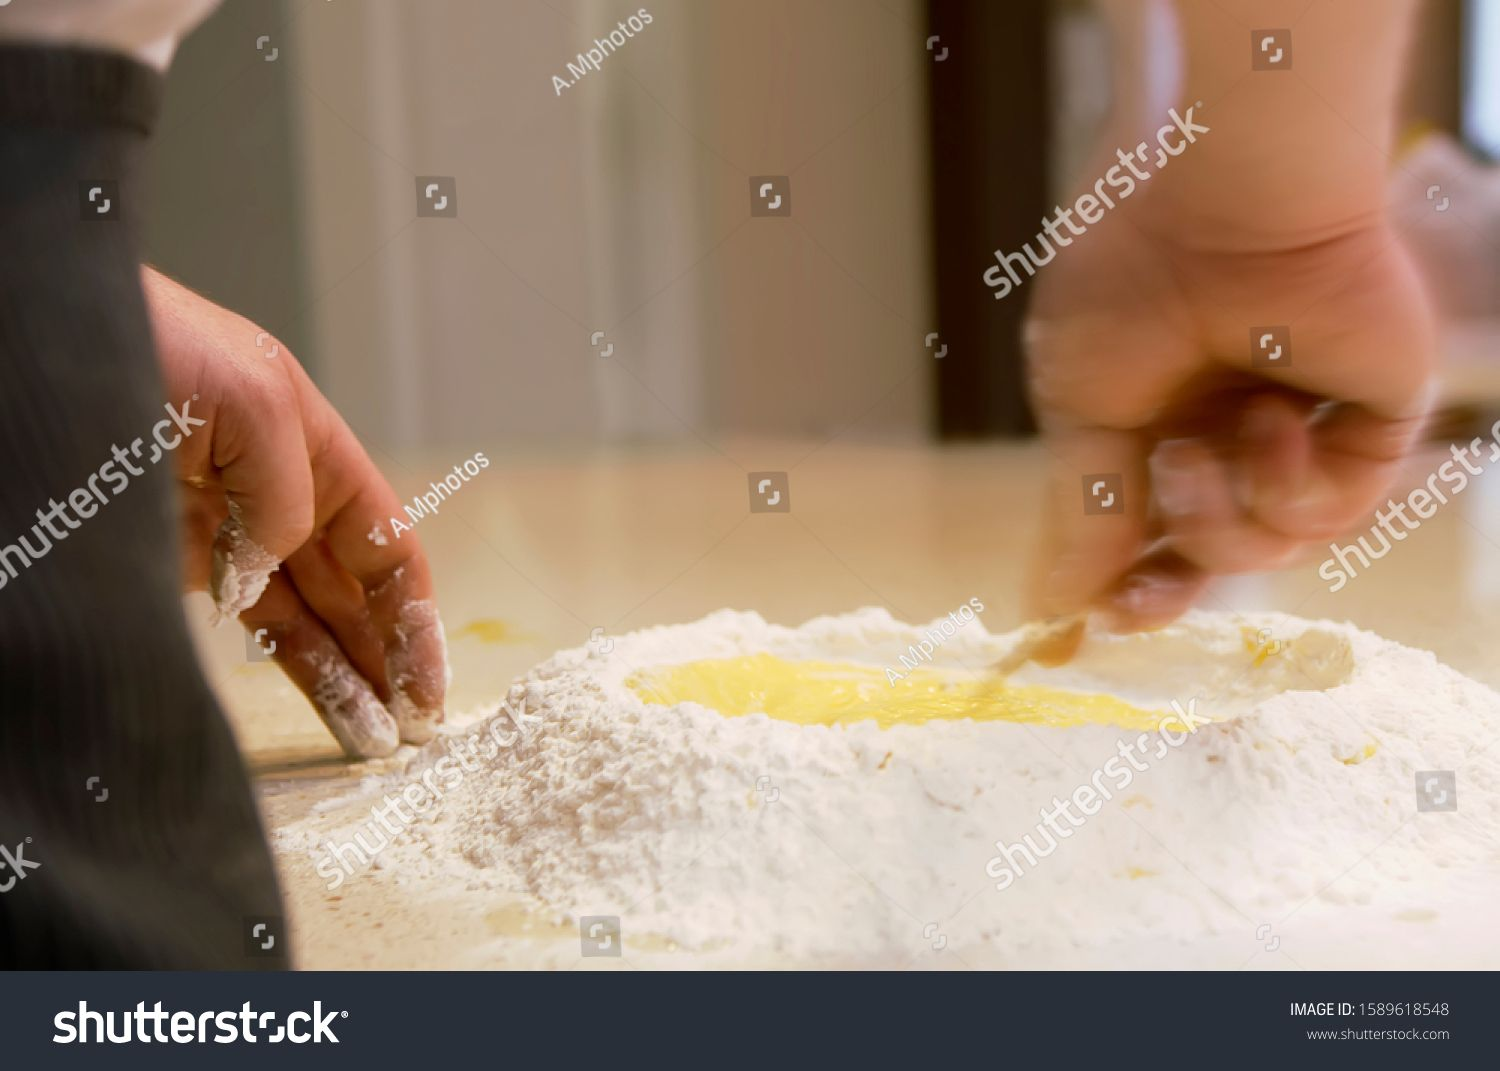 Chef preparing dough in the kitchen and light background, Fresh food concept, Delicious food, passion, Food and drink. #Sponsored , #spon, #kitchen#light#background#Chef